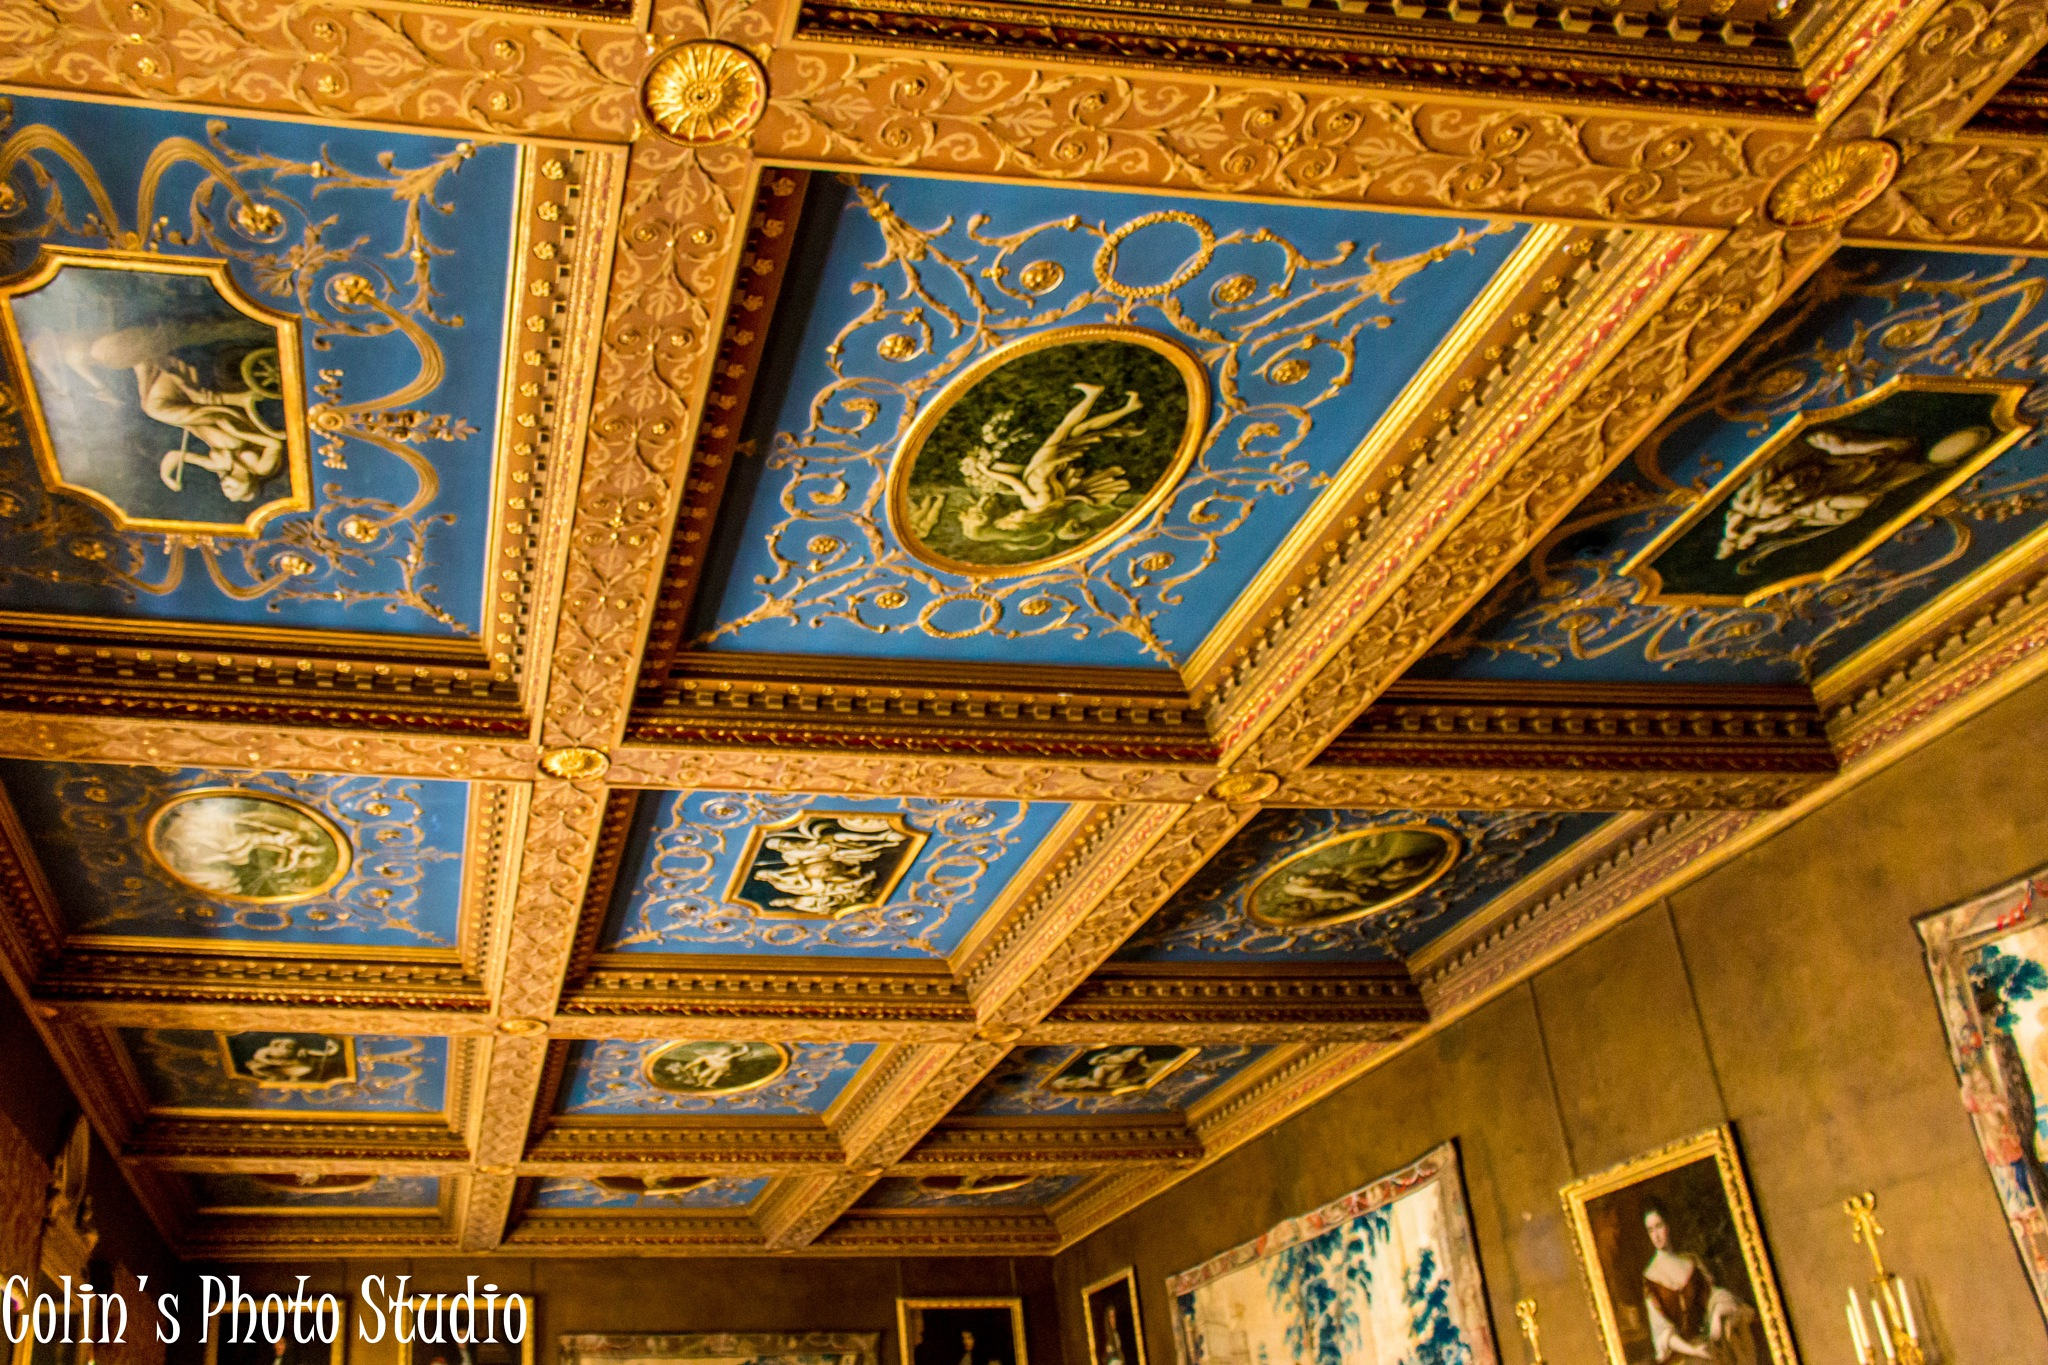 Ceiling of the Lounge by Colin